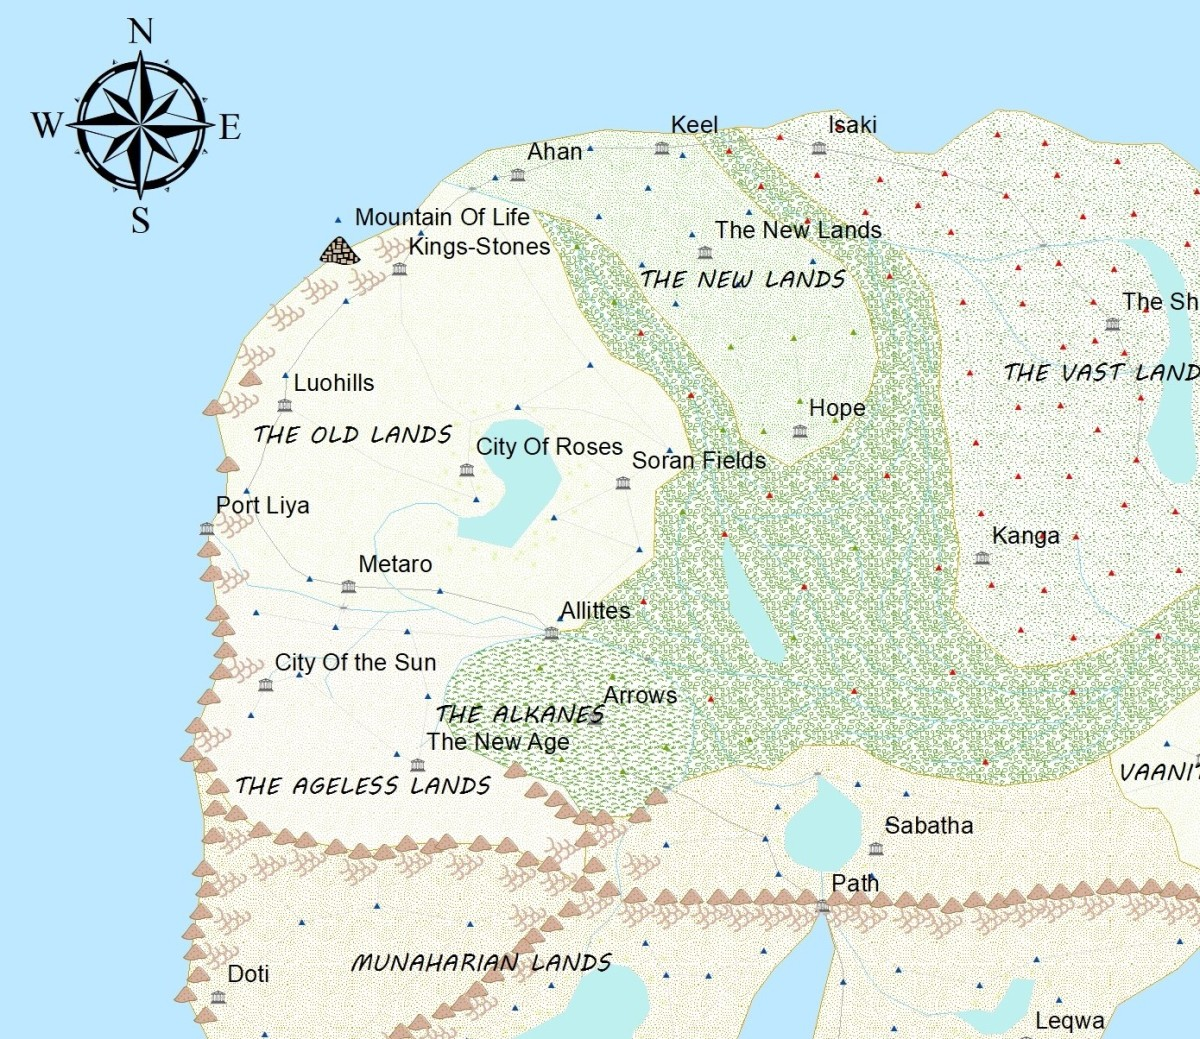 Creating a Fantasy World Map: Scientific Laws to Remember